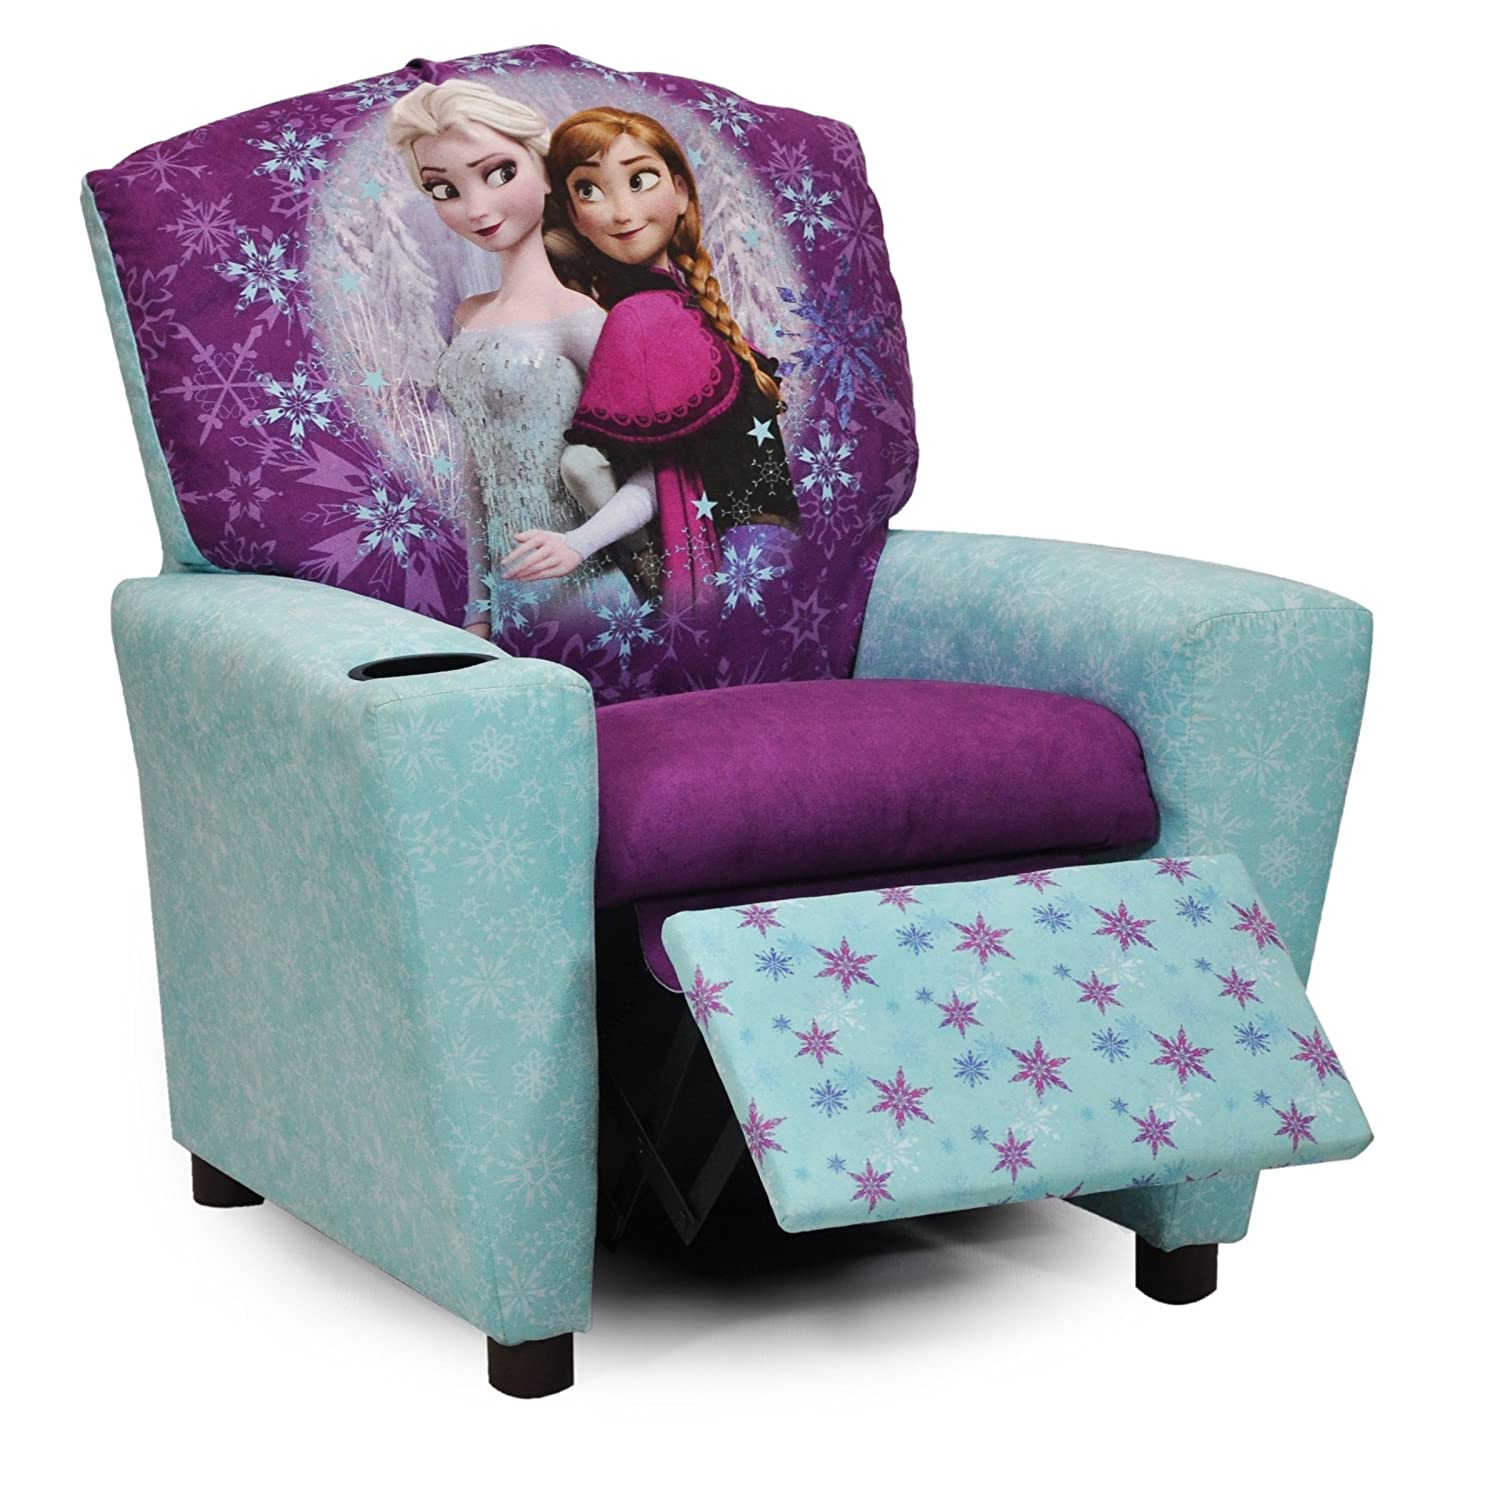 - Amazon.com: Kidz World Kid's Frozen Recliner: Toys & Games